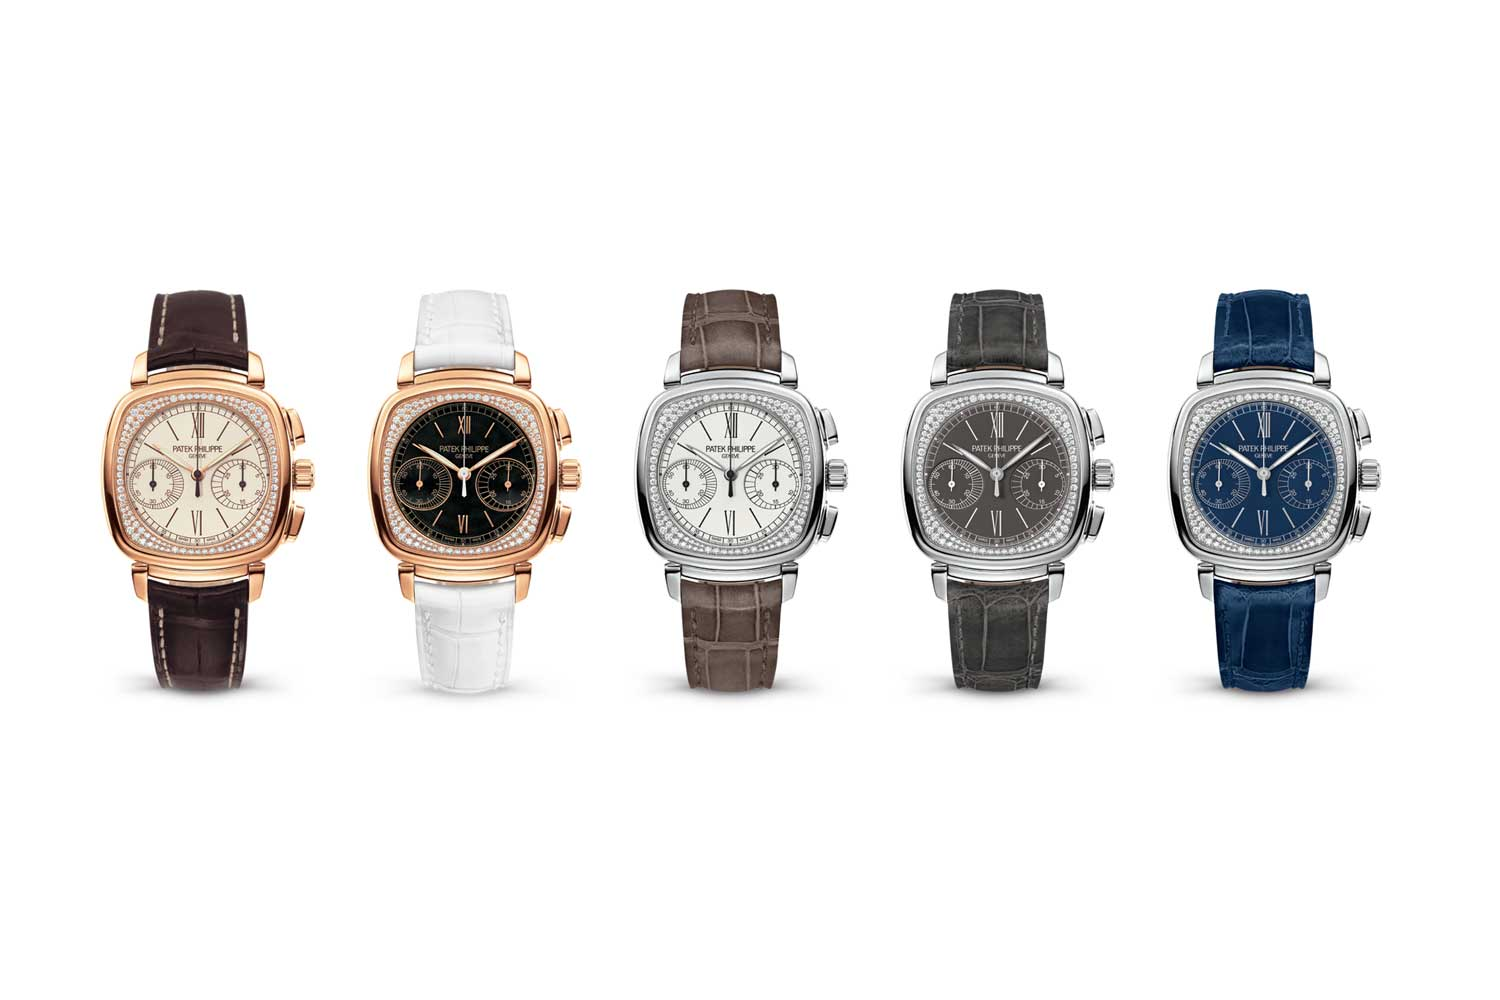 From left, the various executions of the 7071 and their production years: Rose gold, gem-set with silver dial, 2010–2017: rose gold, gem-set with black dial, 2010–2017; white gold, gem-set with silver; dial, 2012–2017; white gold, gem-set with gray dial, 2012–2017; white gold, gem-set with blue dial, 2012–2017